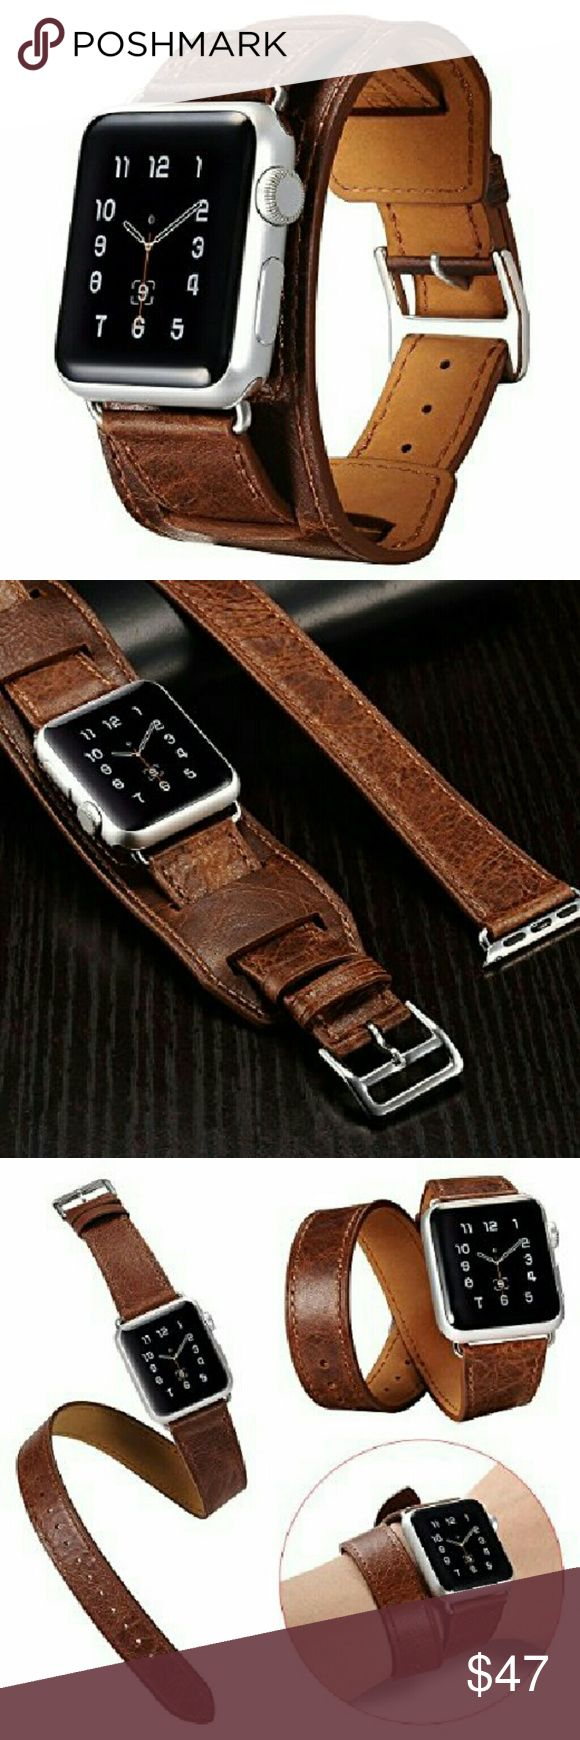 Double Tour Genuine Leather Apple Band BAND ONLY! Apple Watch Leather Band, Icarercase Double Tour and Cuff Genuine Leather Watch Band Strap Replacement iWatch Wristband Link Bracelet with Classic Metal Buckle for Apple Watch (brown for 38mm)      New. Accessories Watches